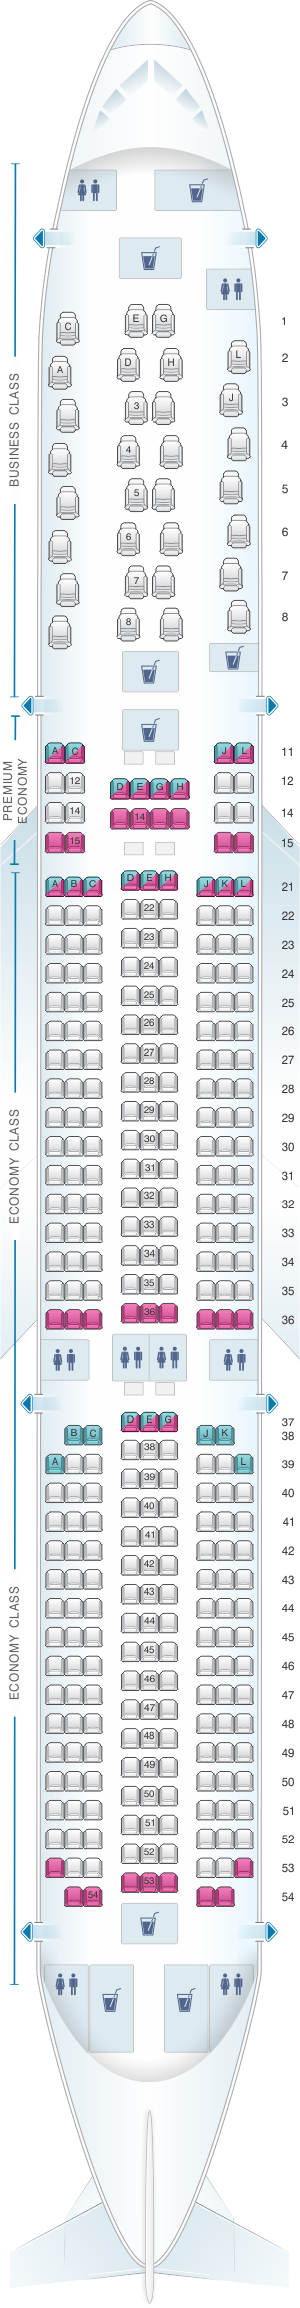 Seat map for Iberia Airbus A350 900